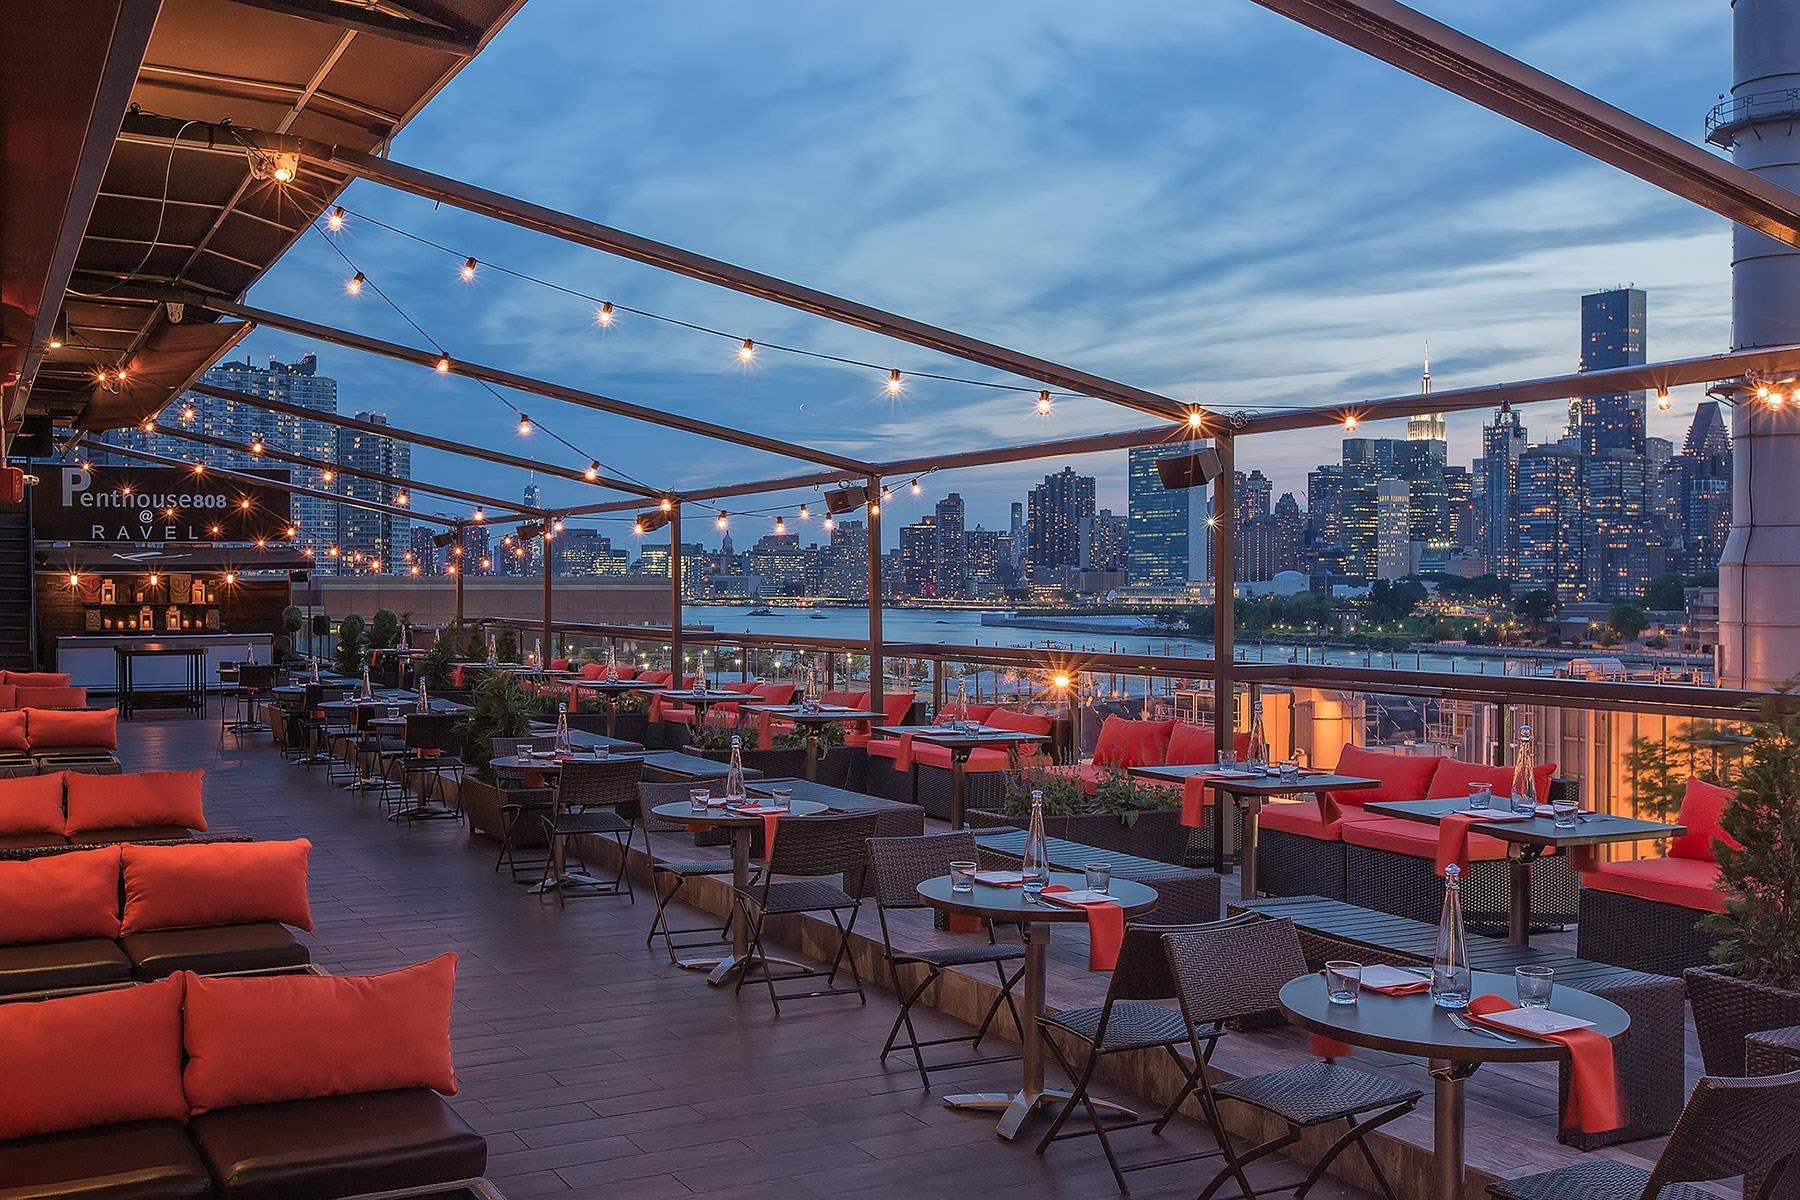 The Best Rooftop Restaurants In Nyc Rooftop Restaurants Nyc New York Rooftop Bar Rooftop Bars Nyc